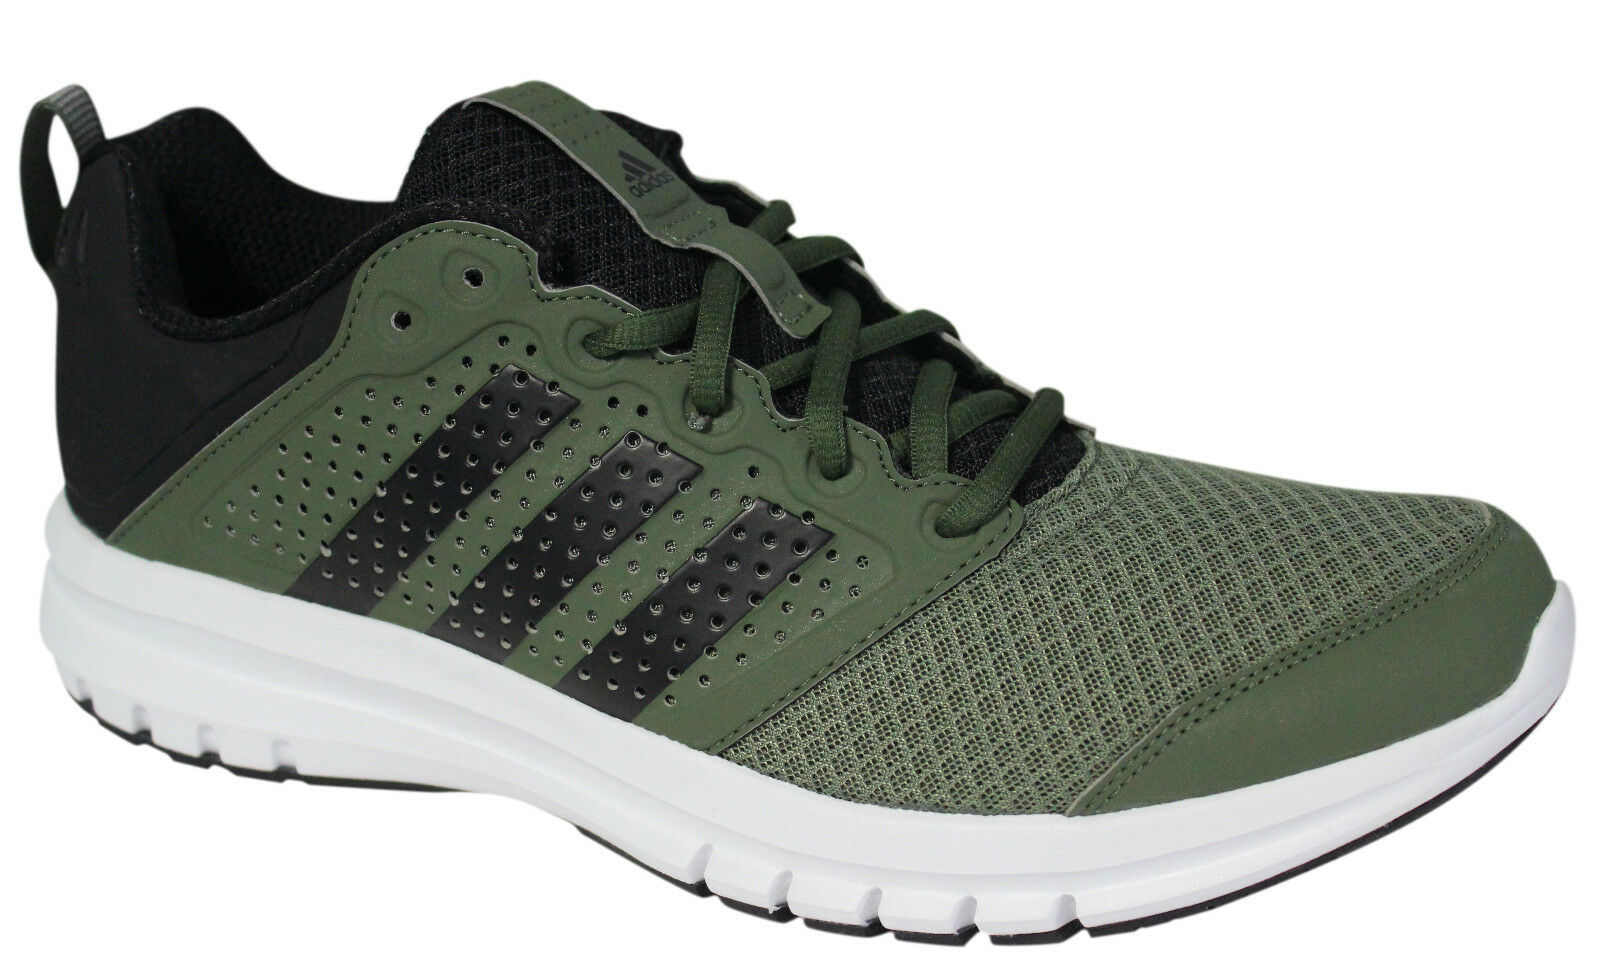 Adidas Sports Performance Madoru hommes Trainers Running D80 Chaussures Green B40363 D80 Running afe99d